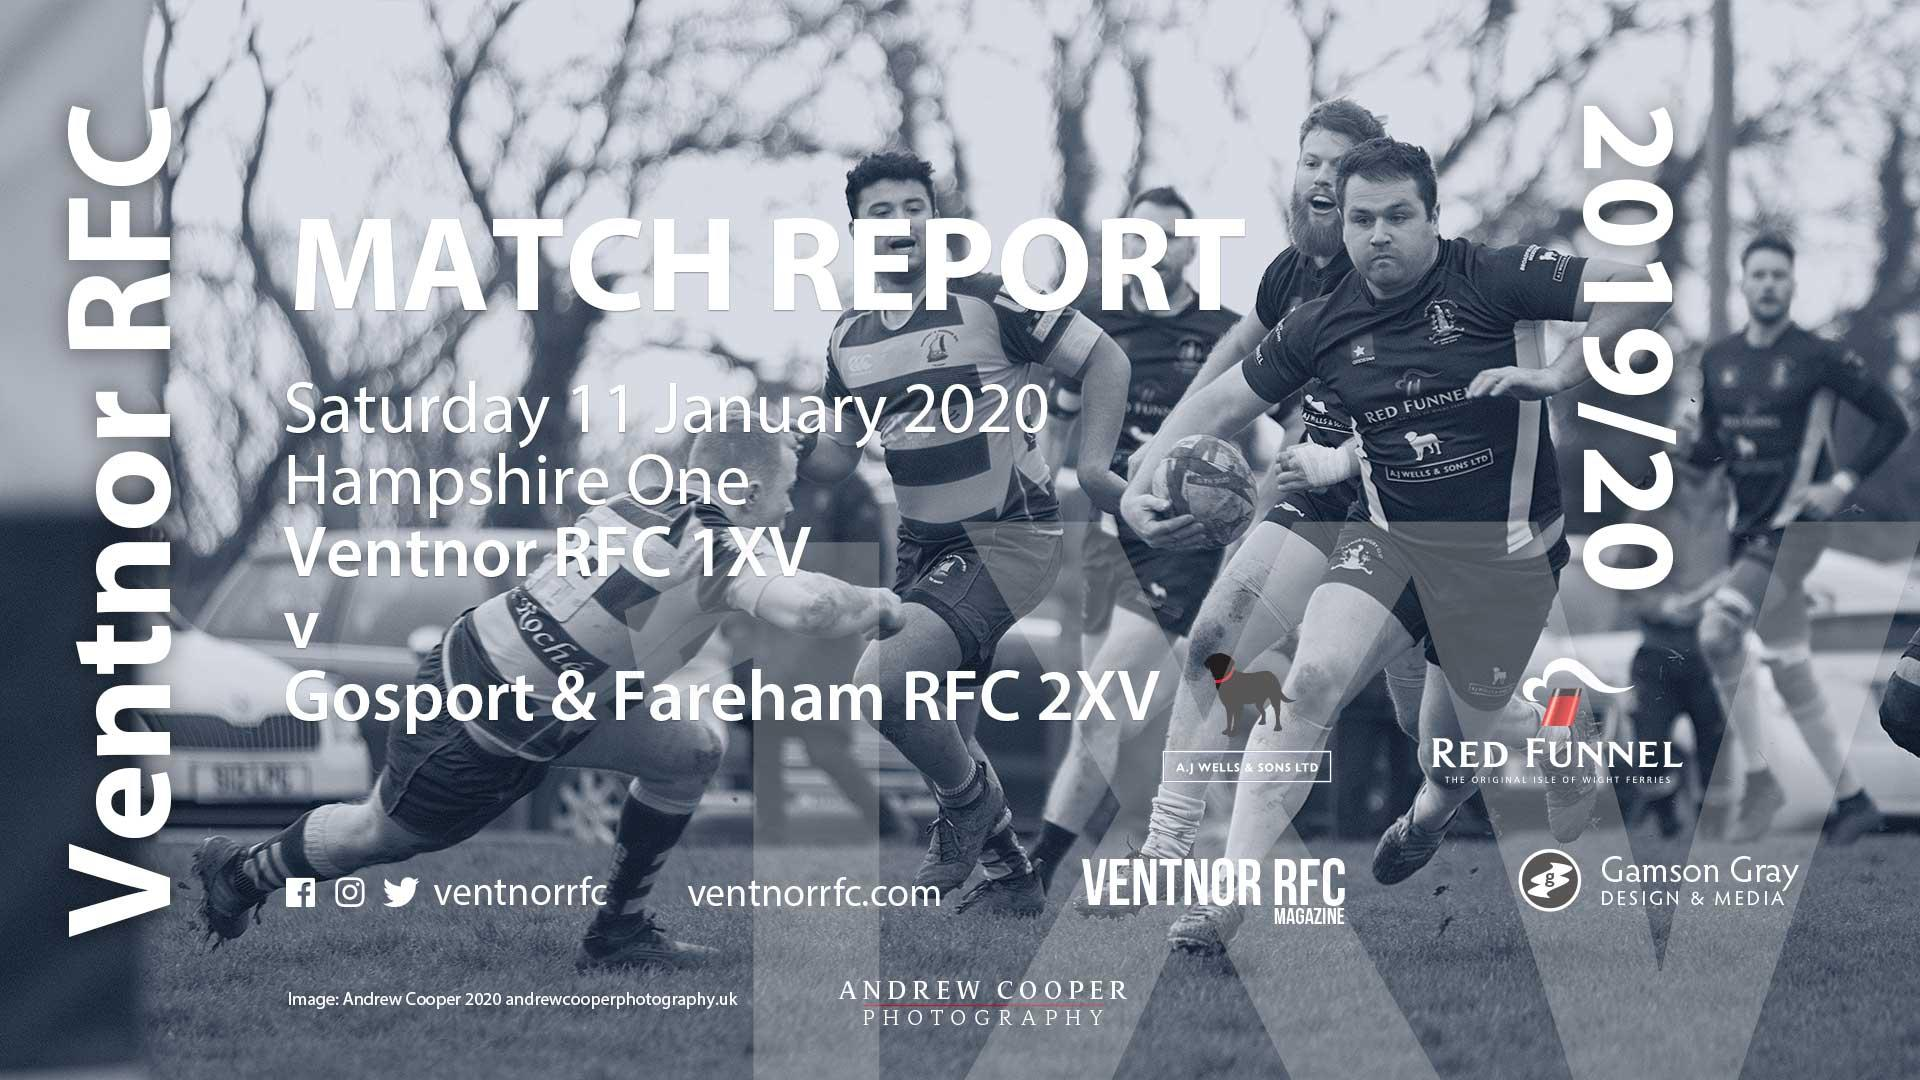 Ventnor RFC 1XV 41-19 Gosport & Fareham RFC 2XV, 11 Jan 2020